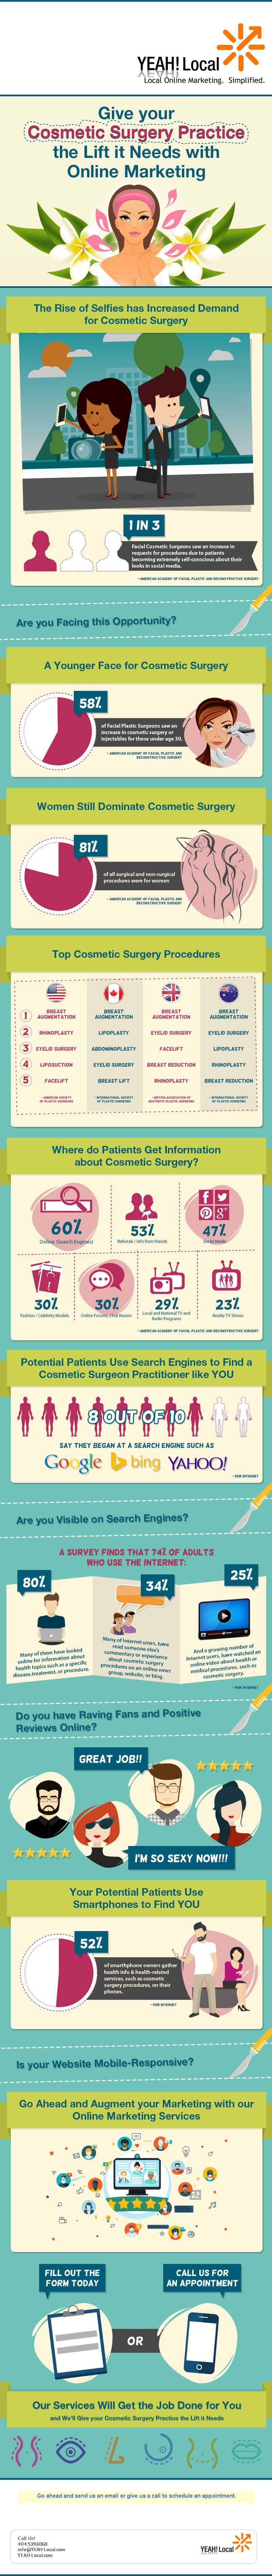 Cosmetic Surgery Marketing: Why Do You Need Online Marketing for Your Practice?